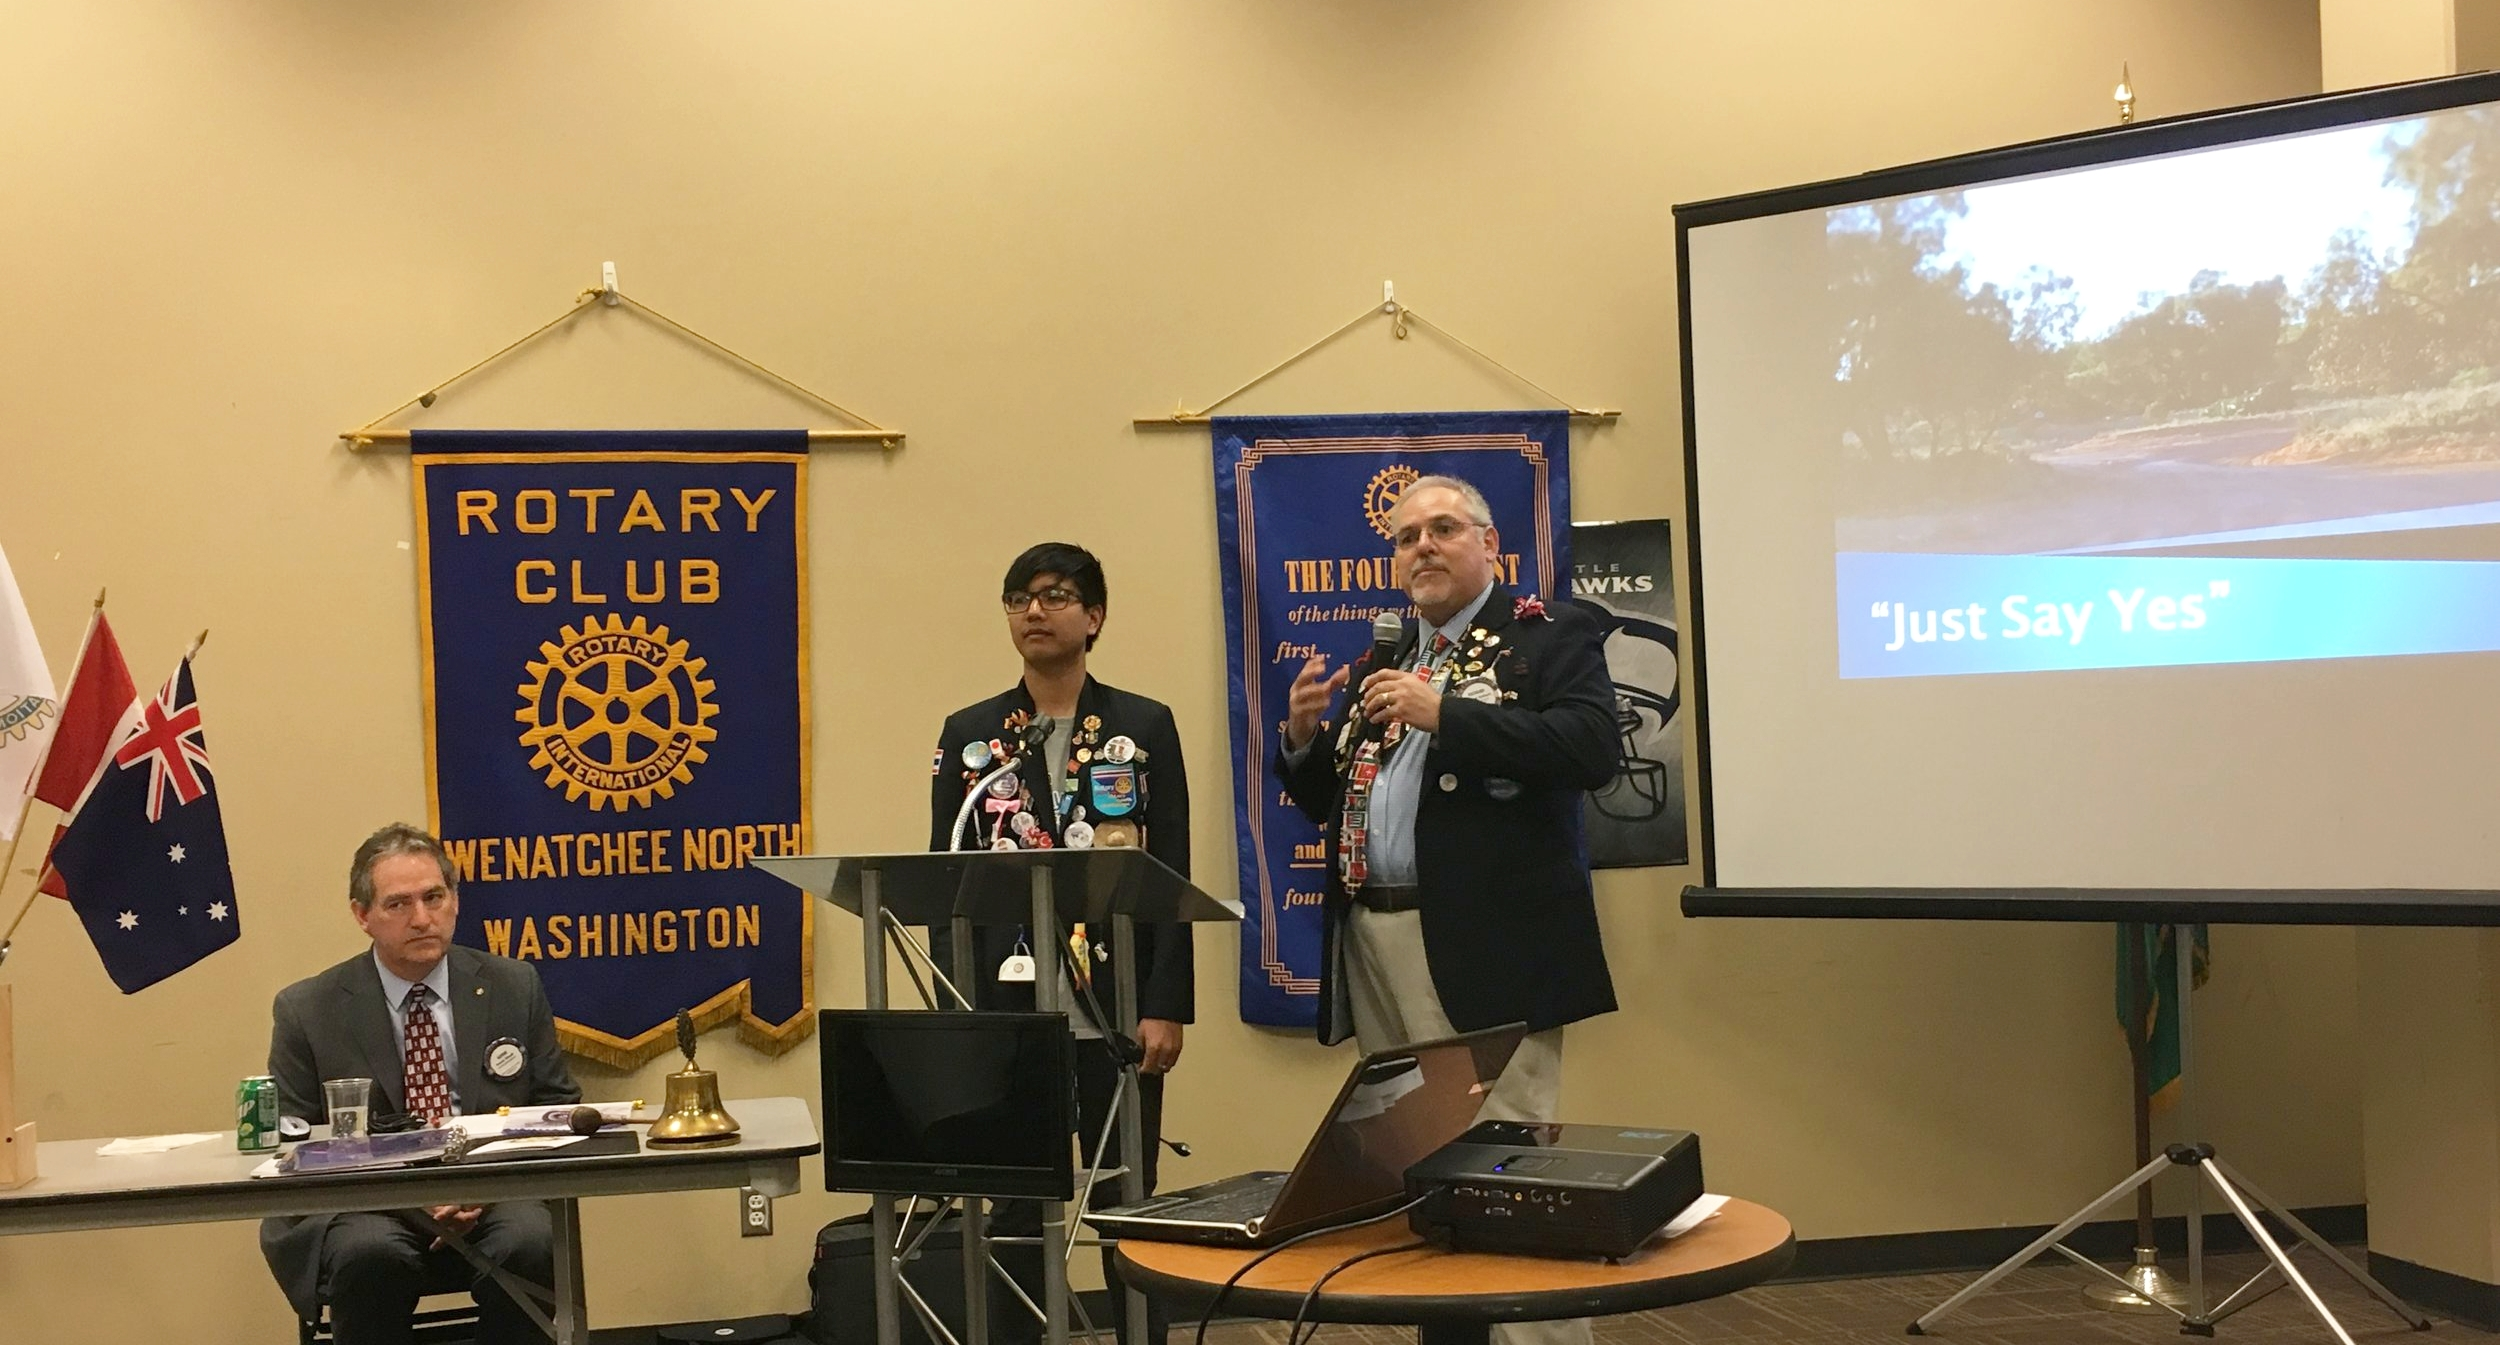 President elect Richard DeRock introduces Rotary exchange student Putter, from Thailand